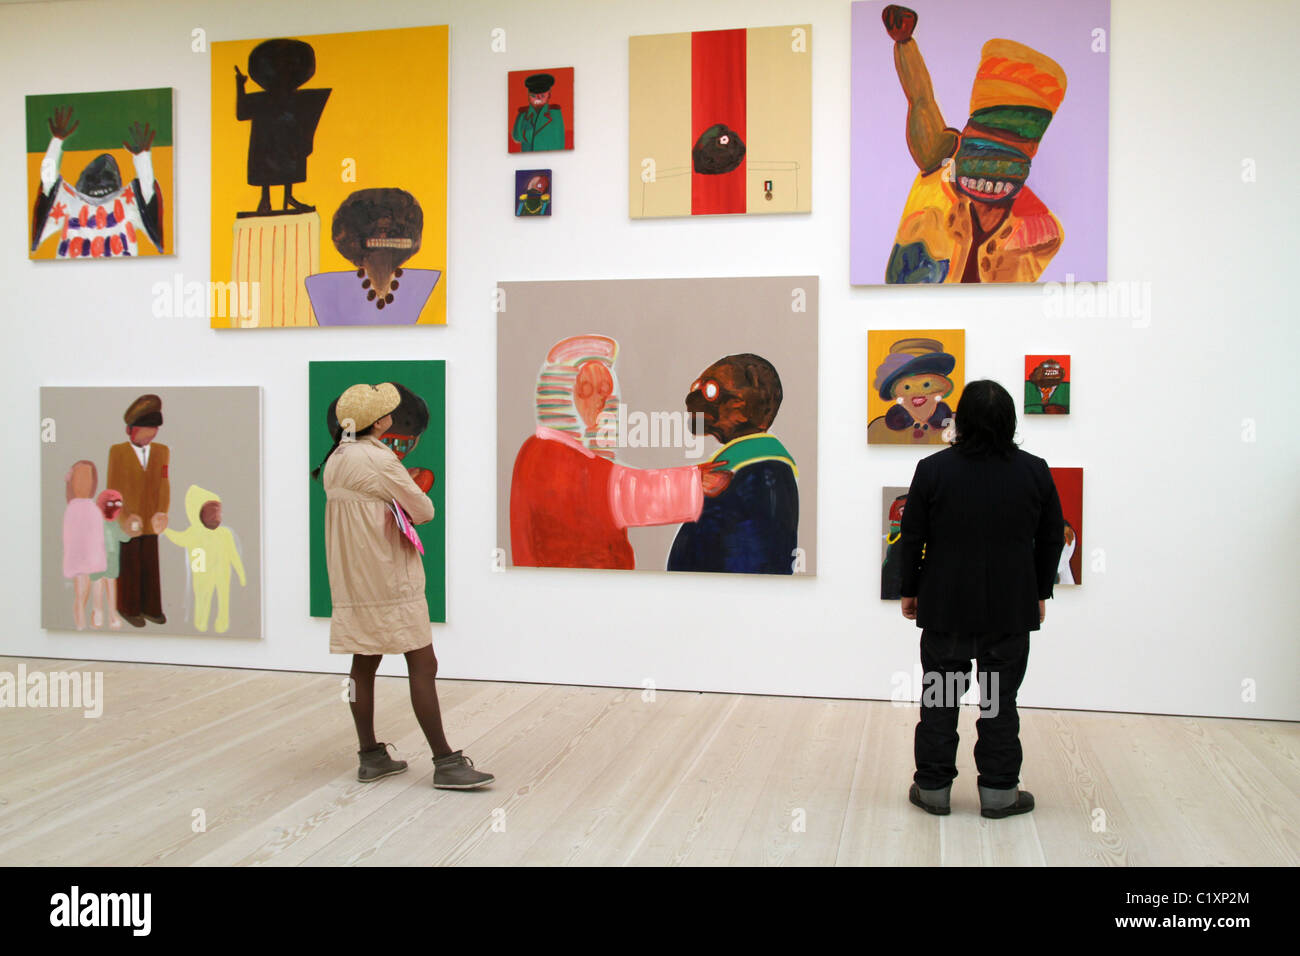 UK. VISITORS TO SAATCHI ART GALLERY IN CHELSEA, LONDON - Stock Image